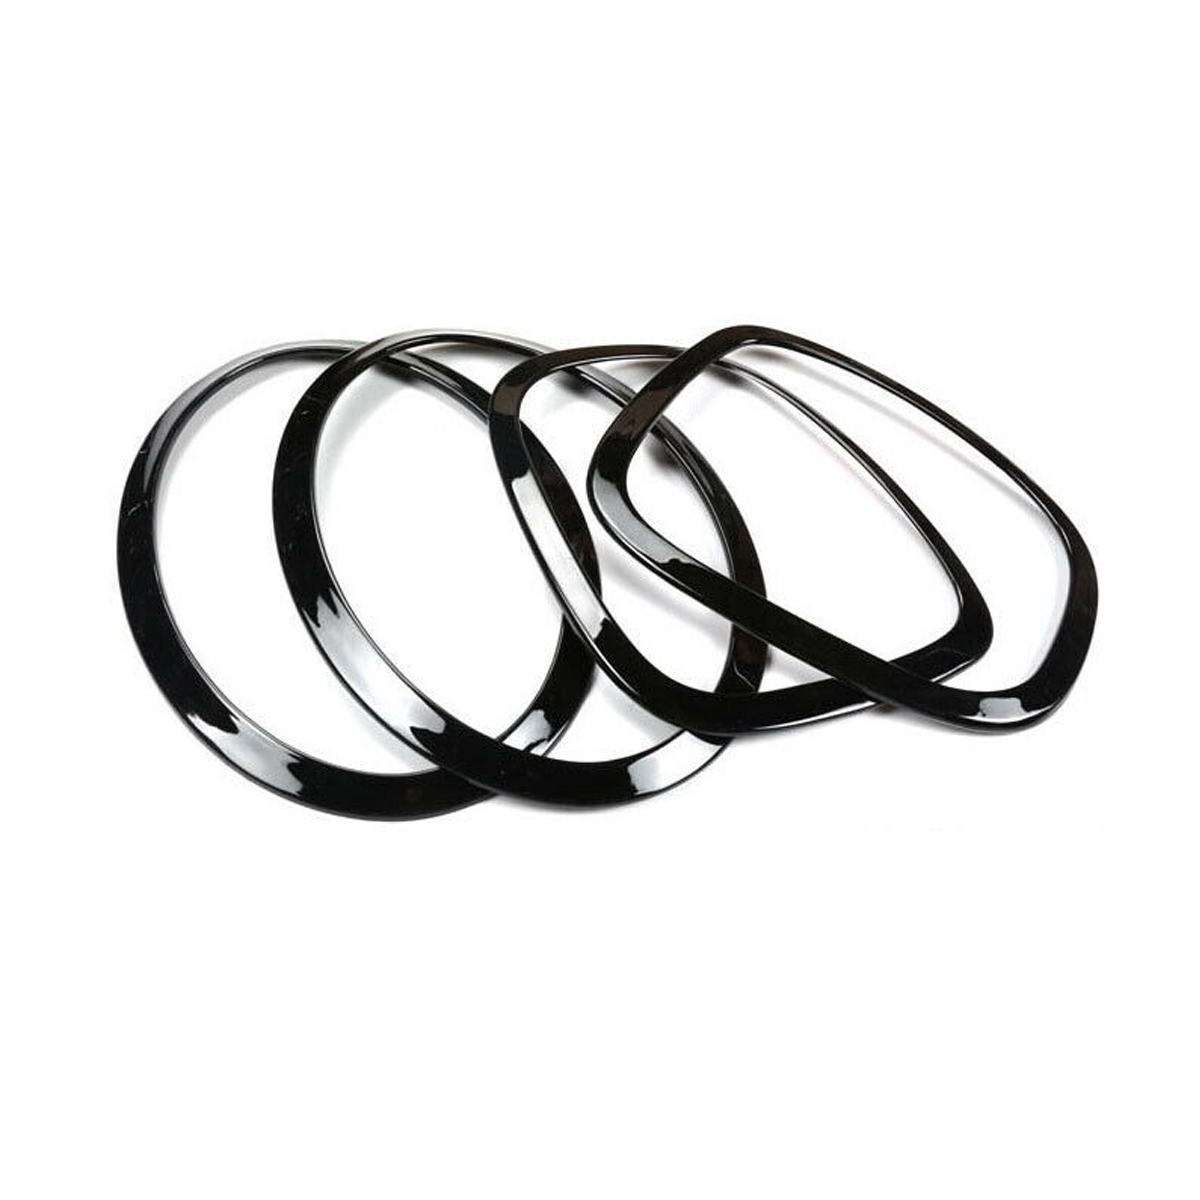 4pcs Black Headlight Head Tail Rear Lamps Trim Ring For